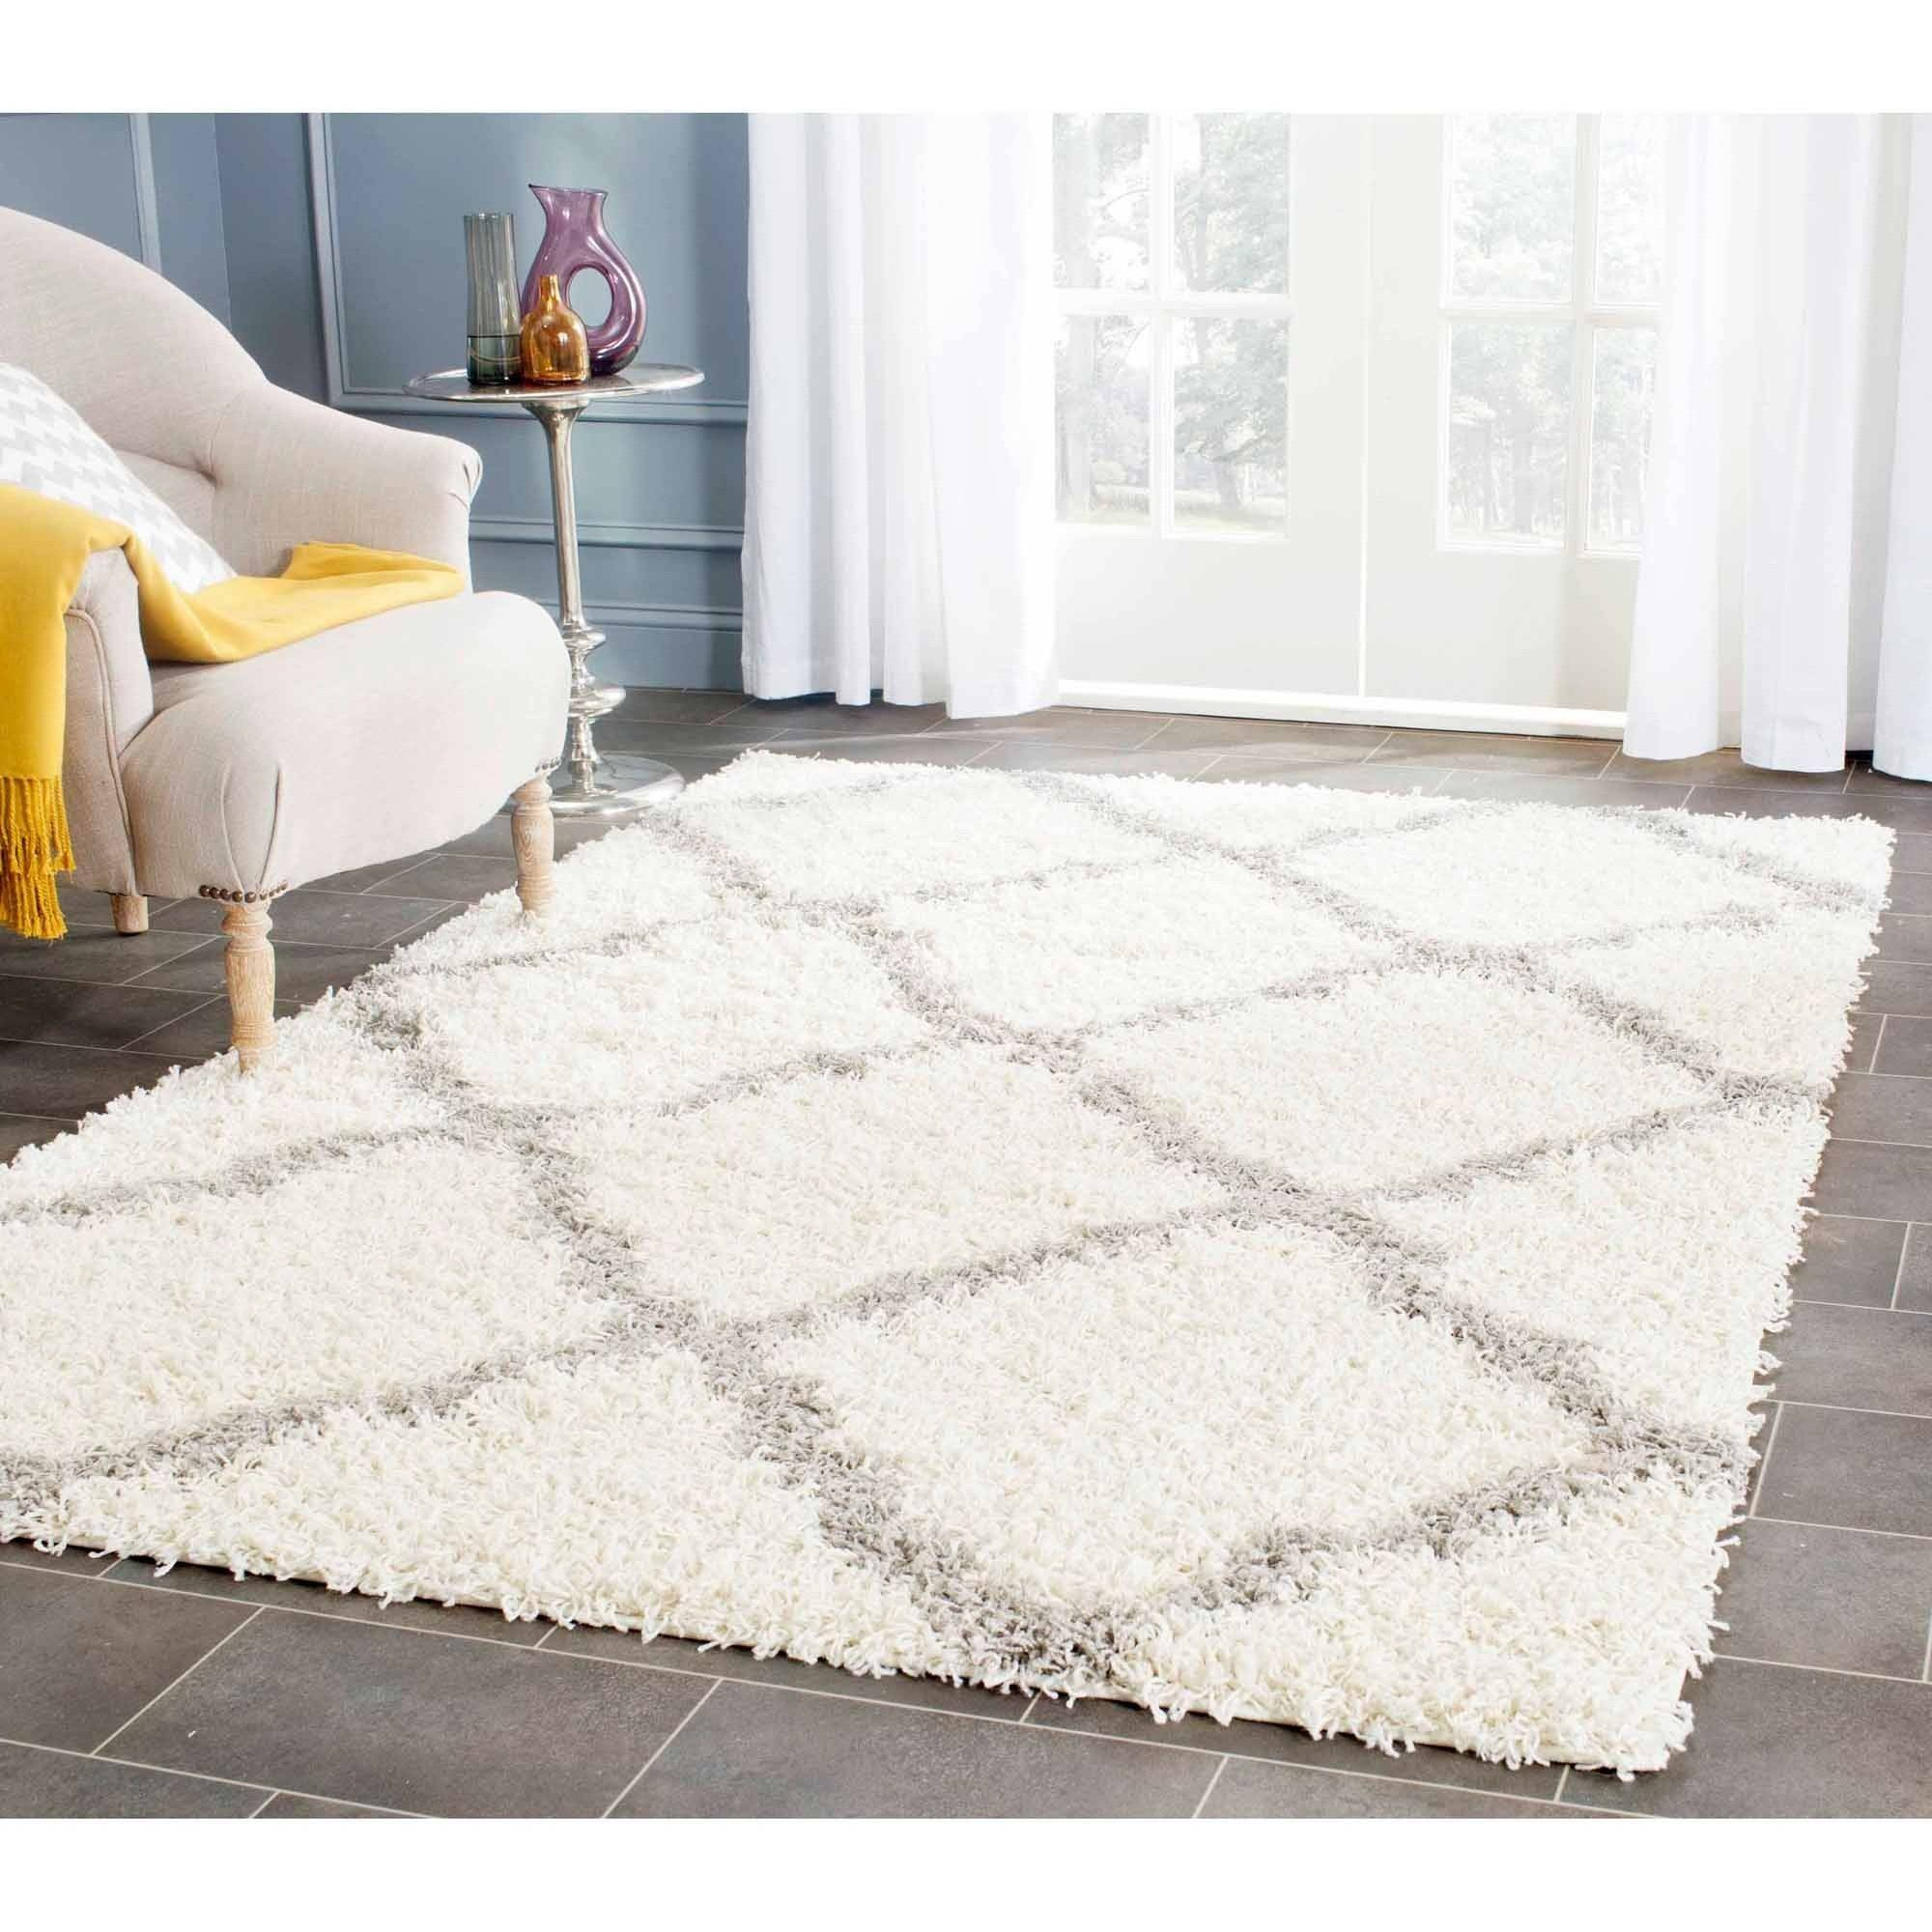 rug wool shag diamond west elm crag media uk